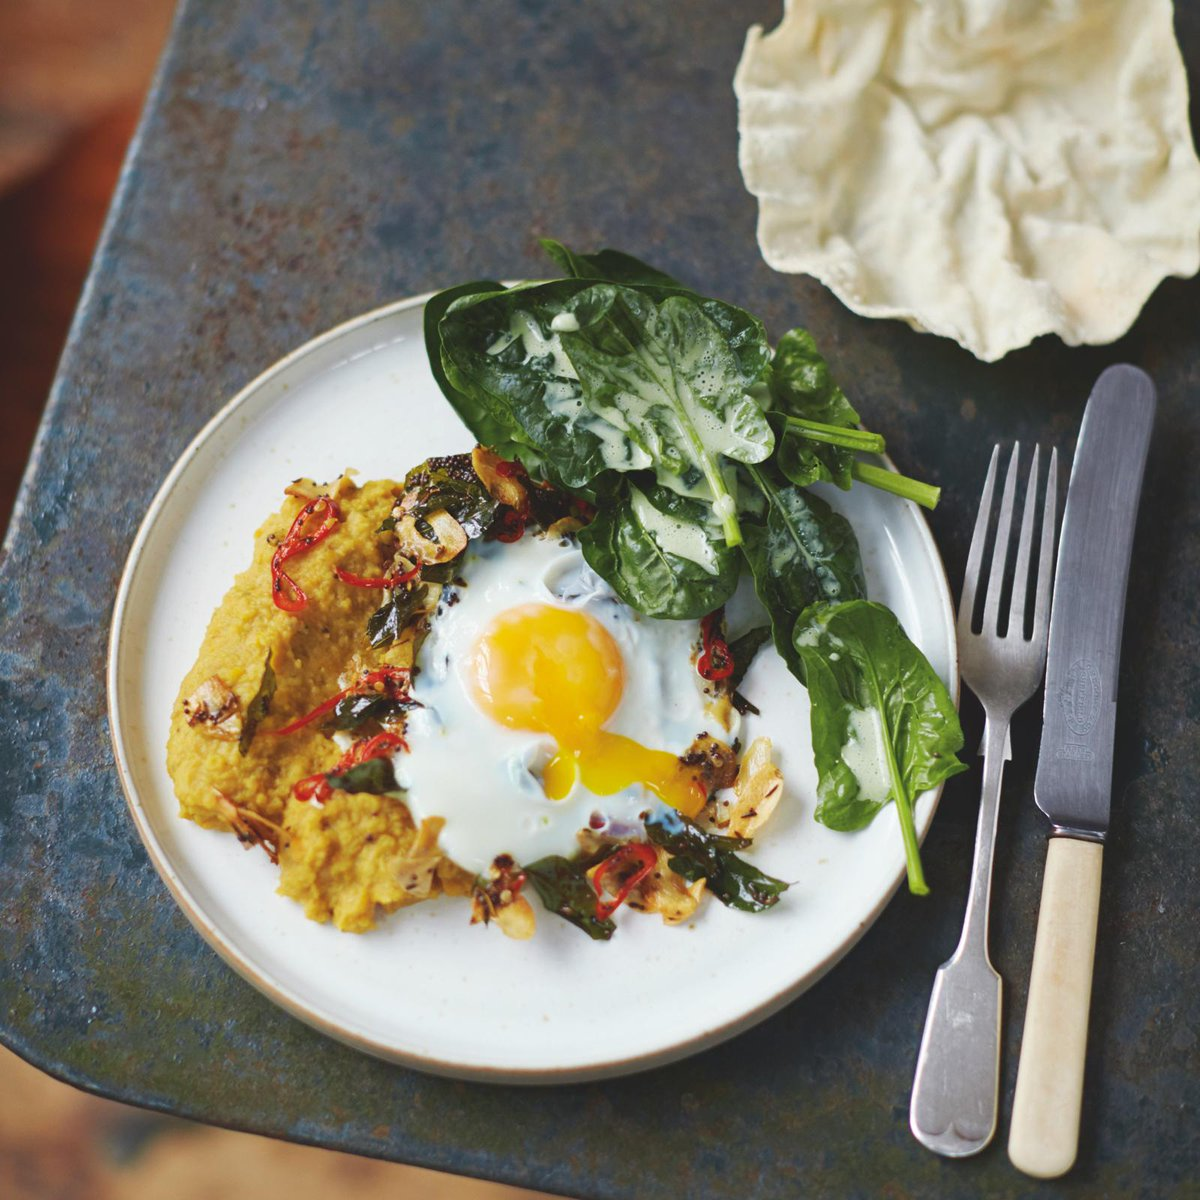 #Recipeoftheday Delicious squash daal. Special fried eggs & poppadoms http://t.co/uEojwGqFr8 #JamiesSuperFood http://t.co/iVAGmqSh0g